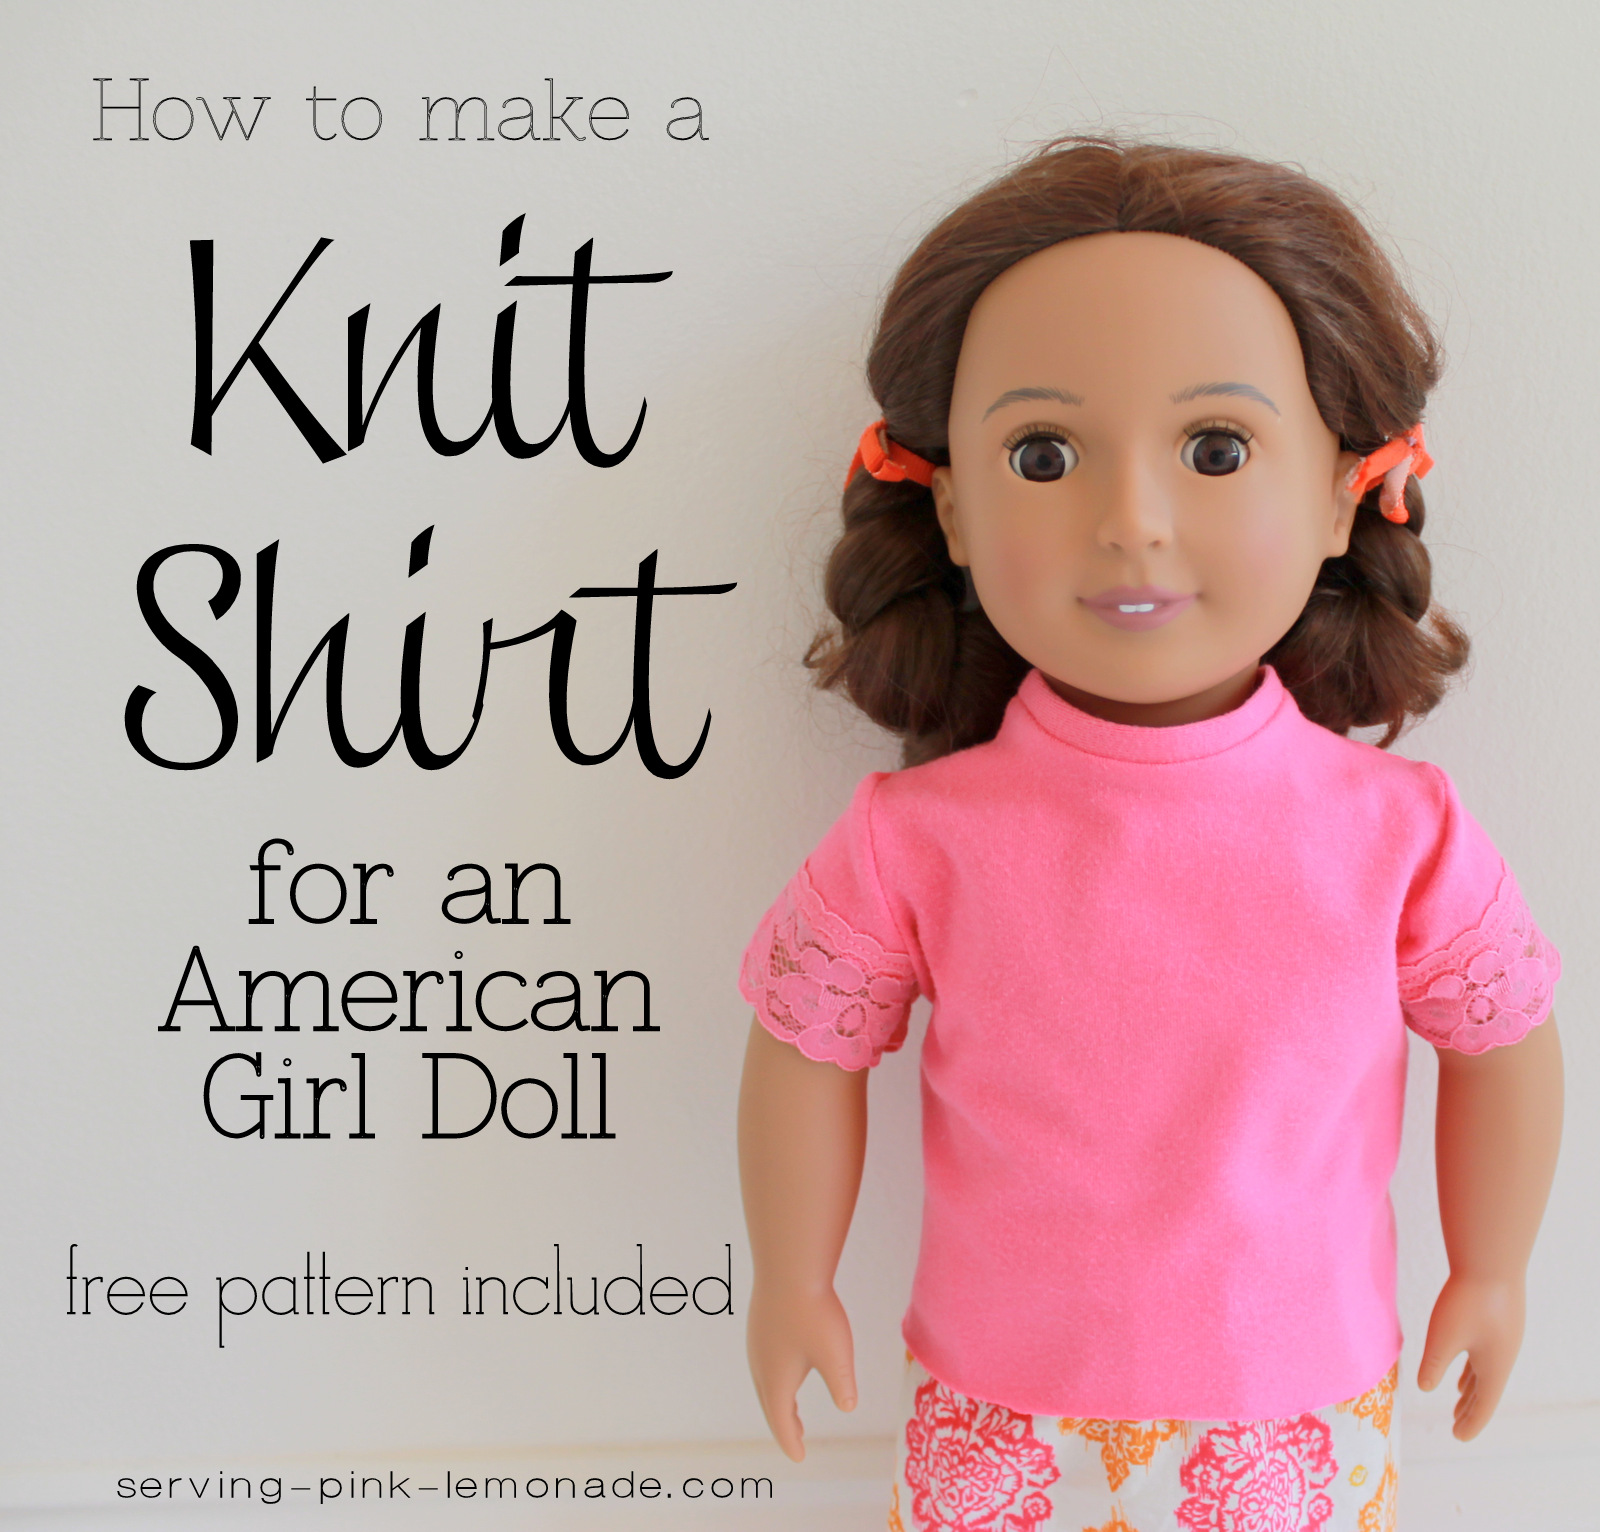 Serving Pink Lemonade: How to Sew a Shirt for an 18 Inch Doll - Free ...